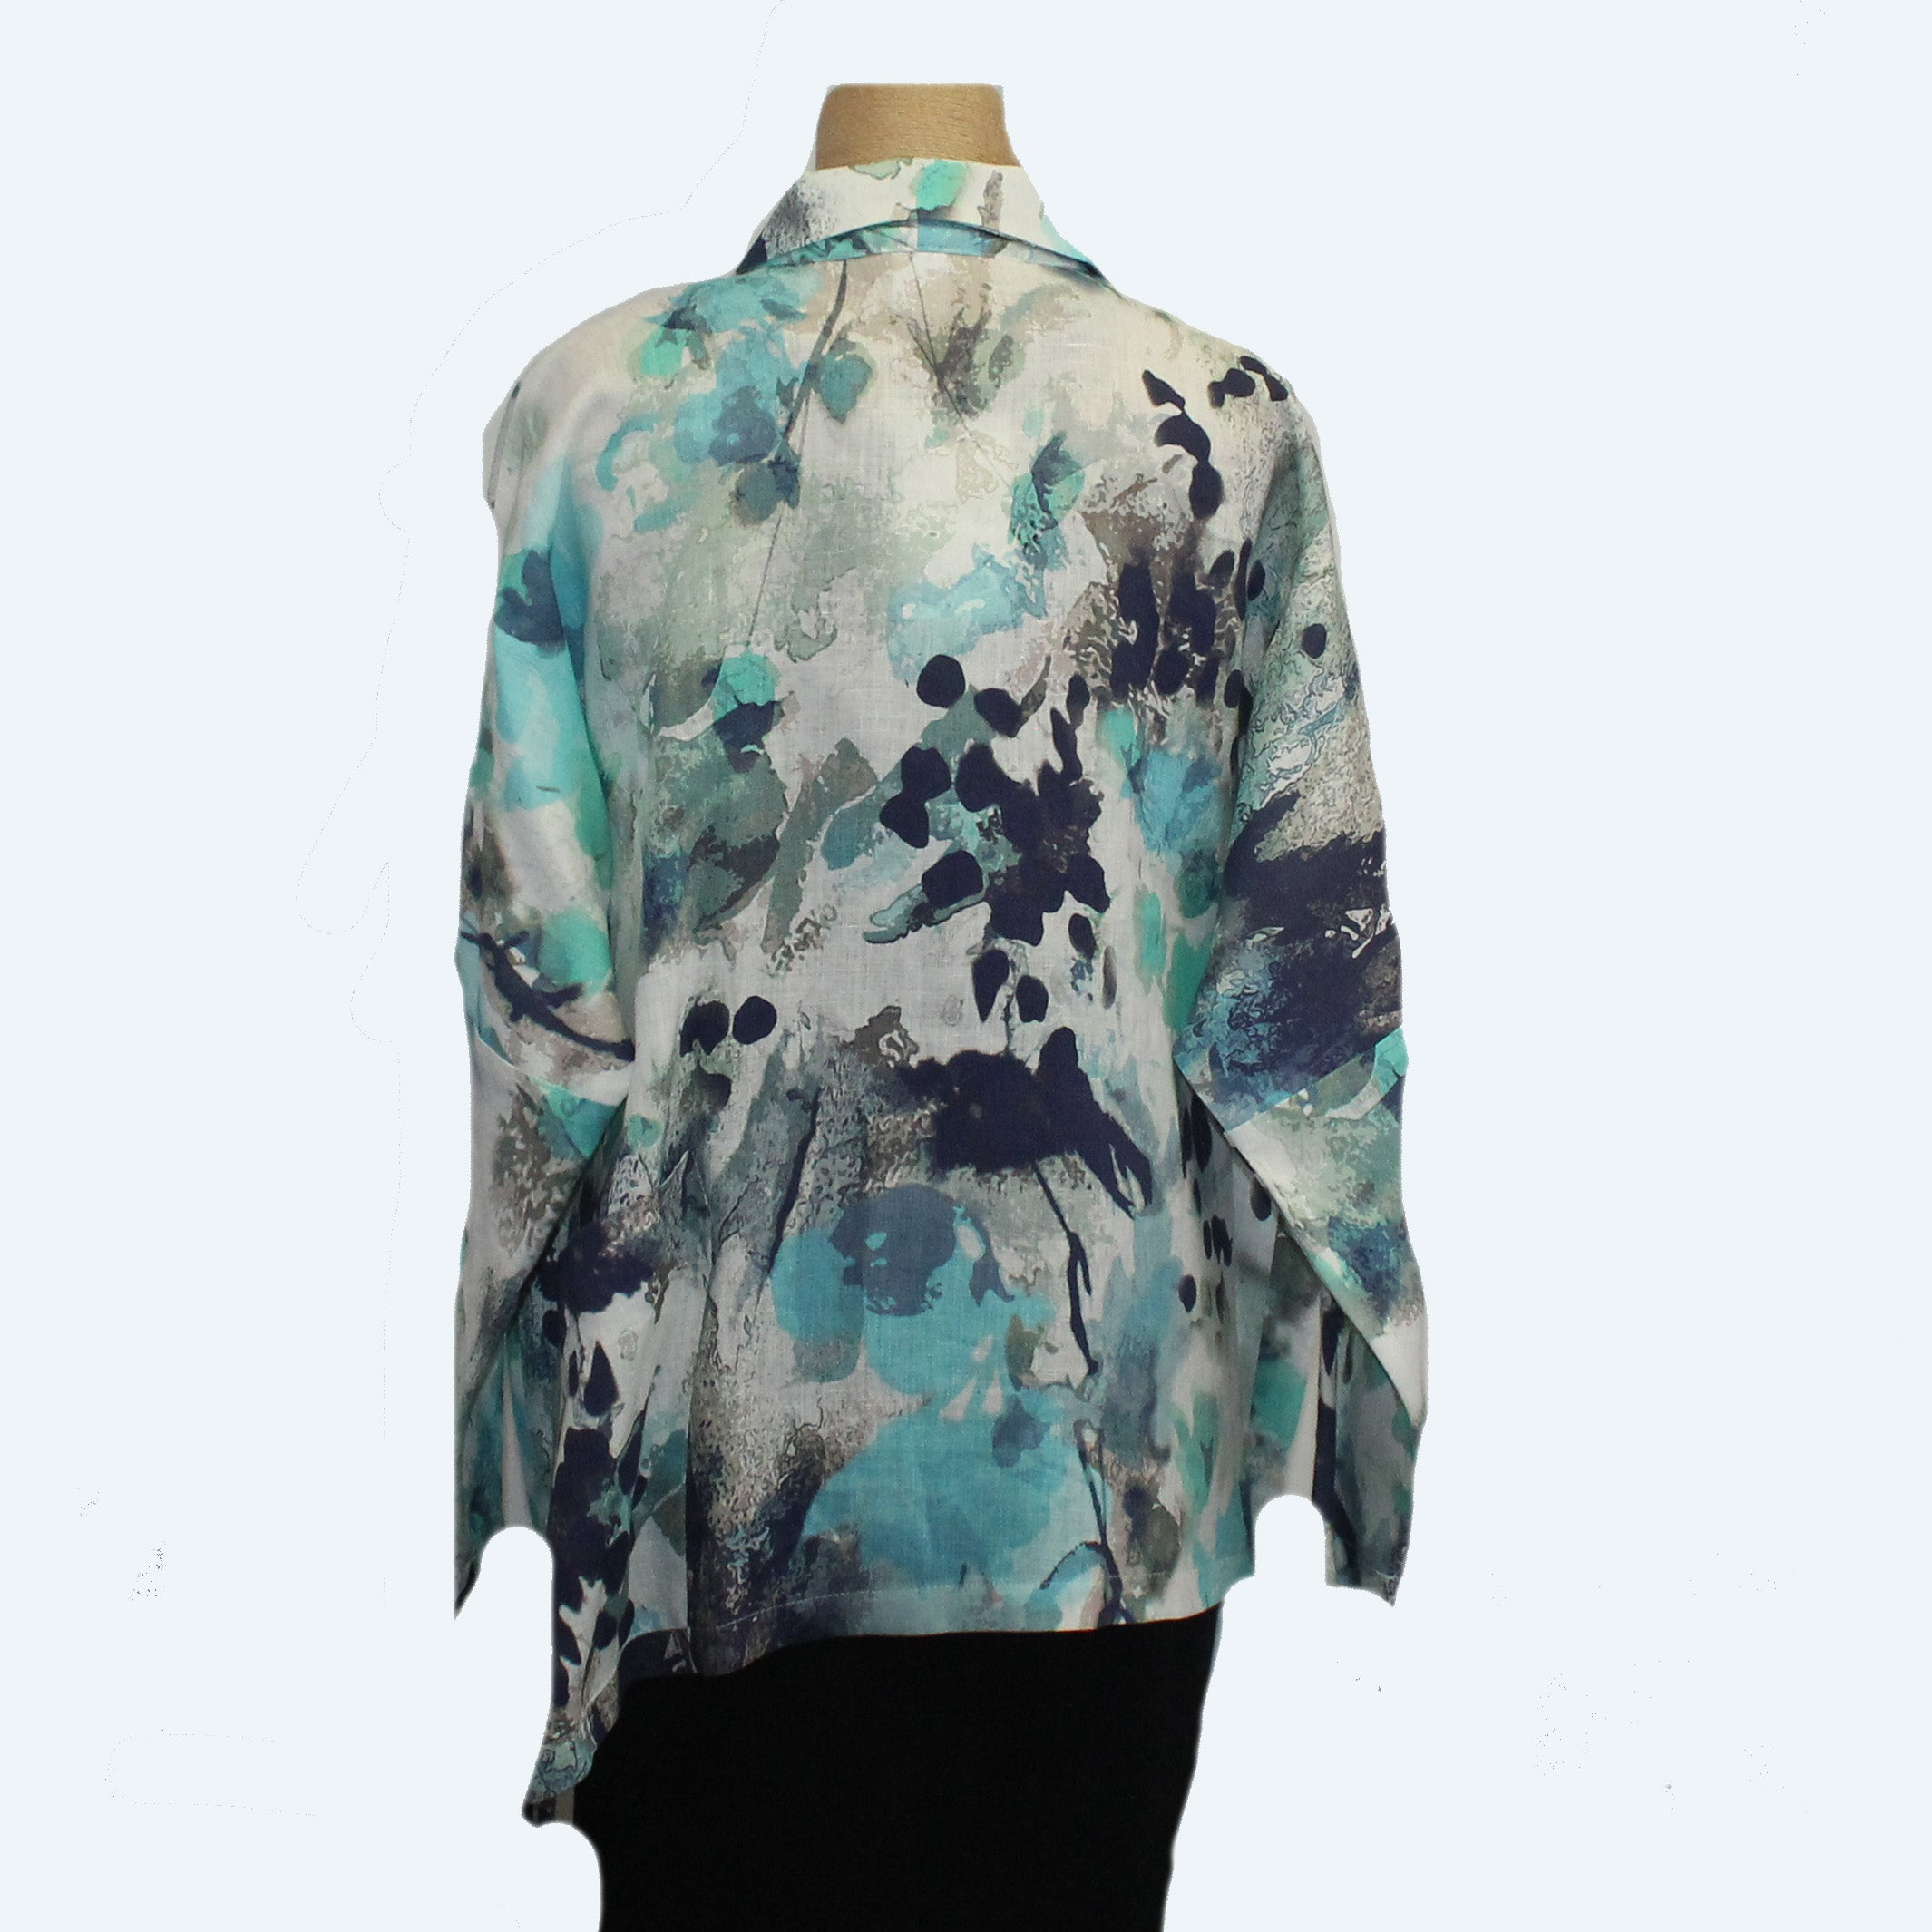 M Square Shirt, Drench, White/Turquoise/Black